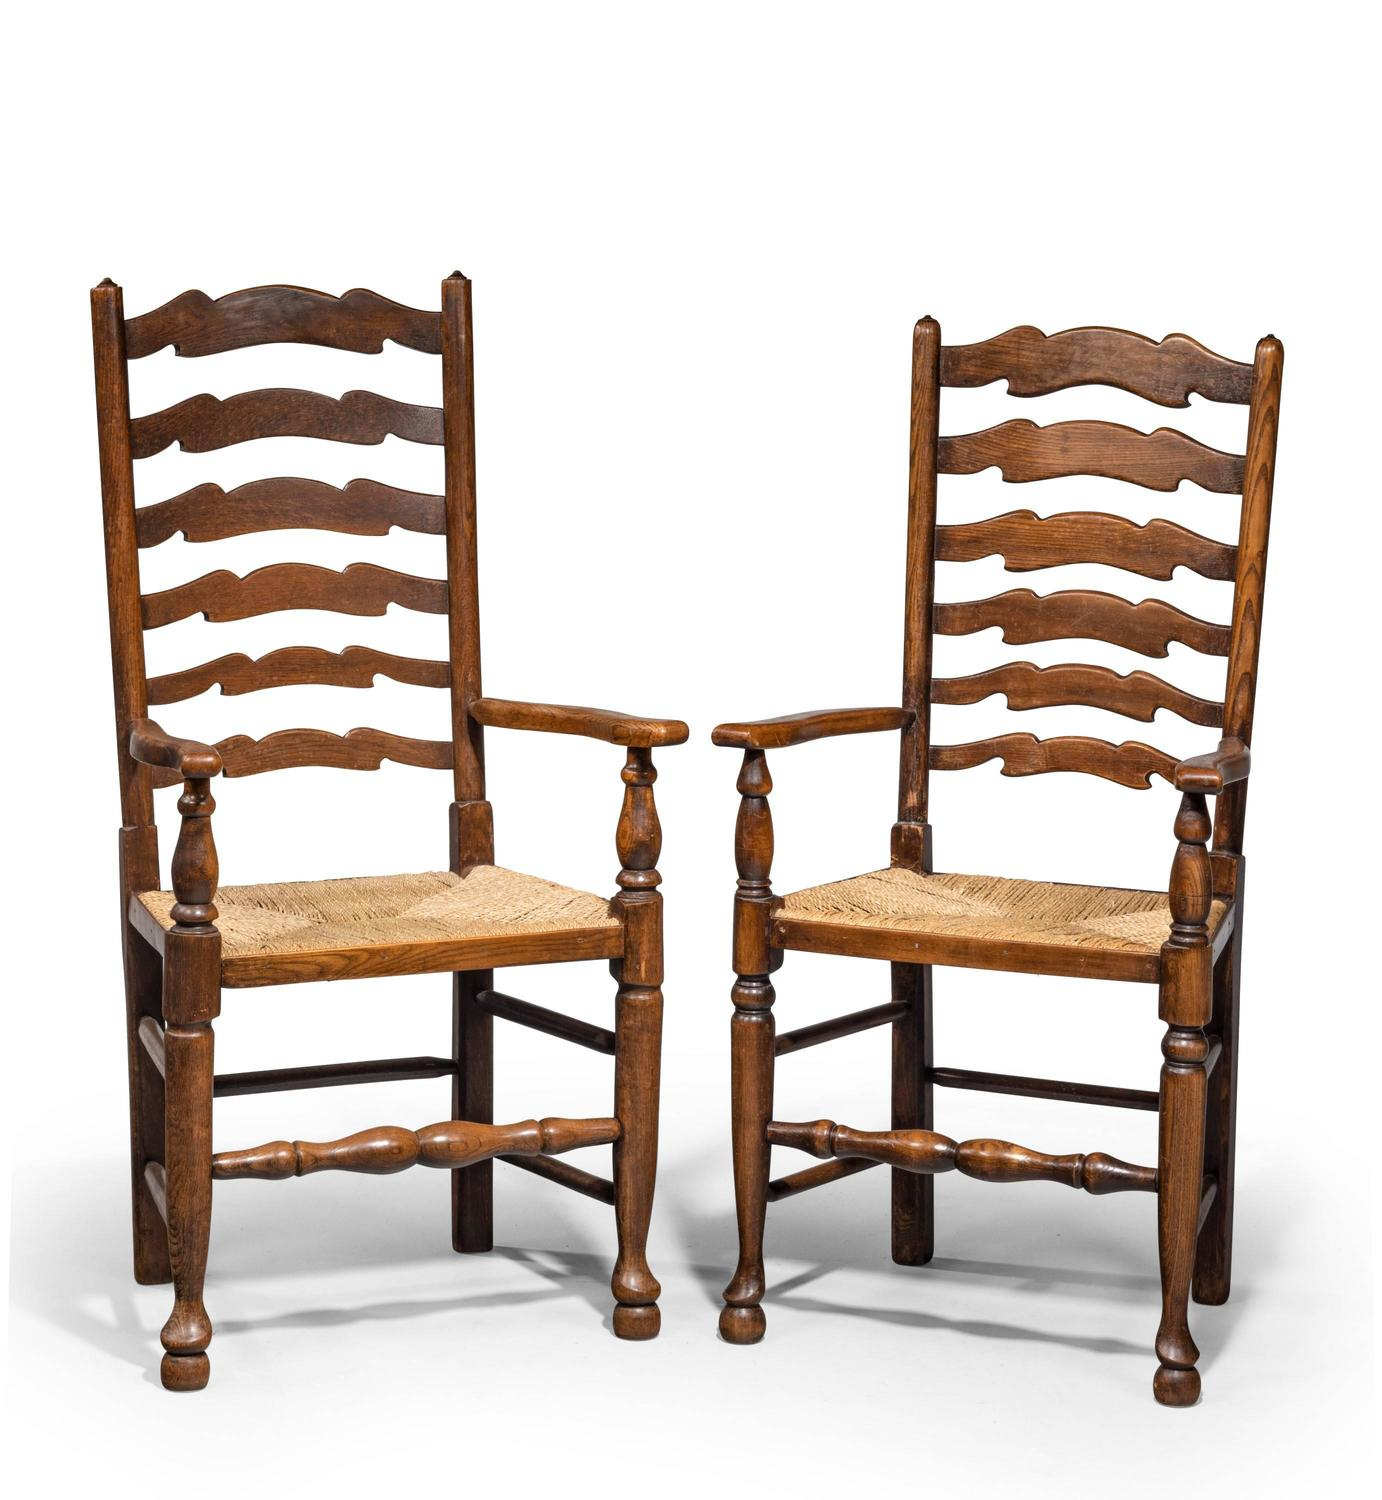 Set of Eight Late 19th Century Ladderback Chairs For Sale  : 734710z from www.1stdibs.com size 1382 x 1500 jpeg 150kB